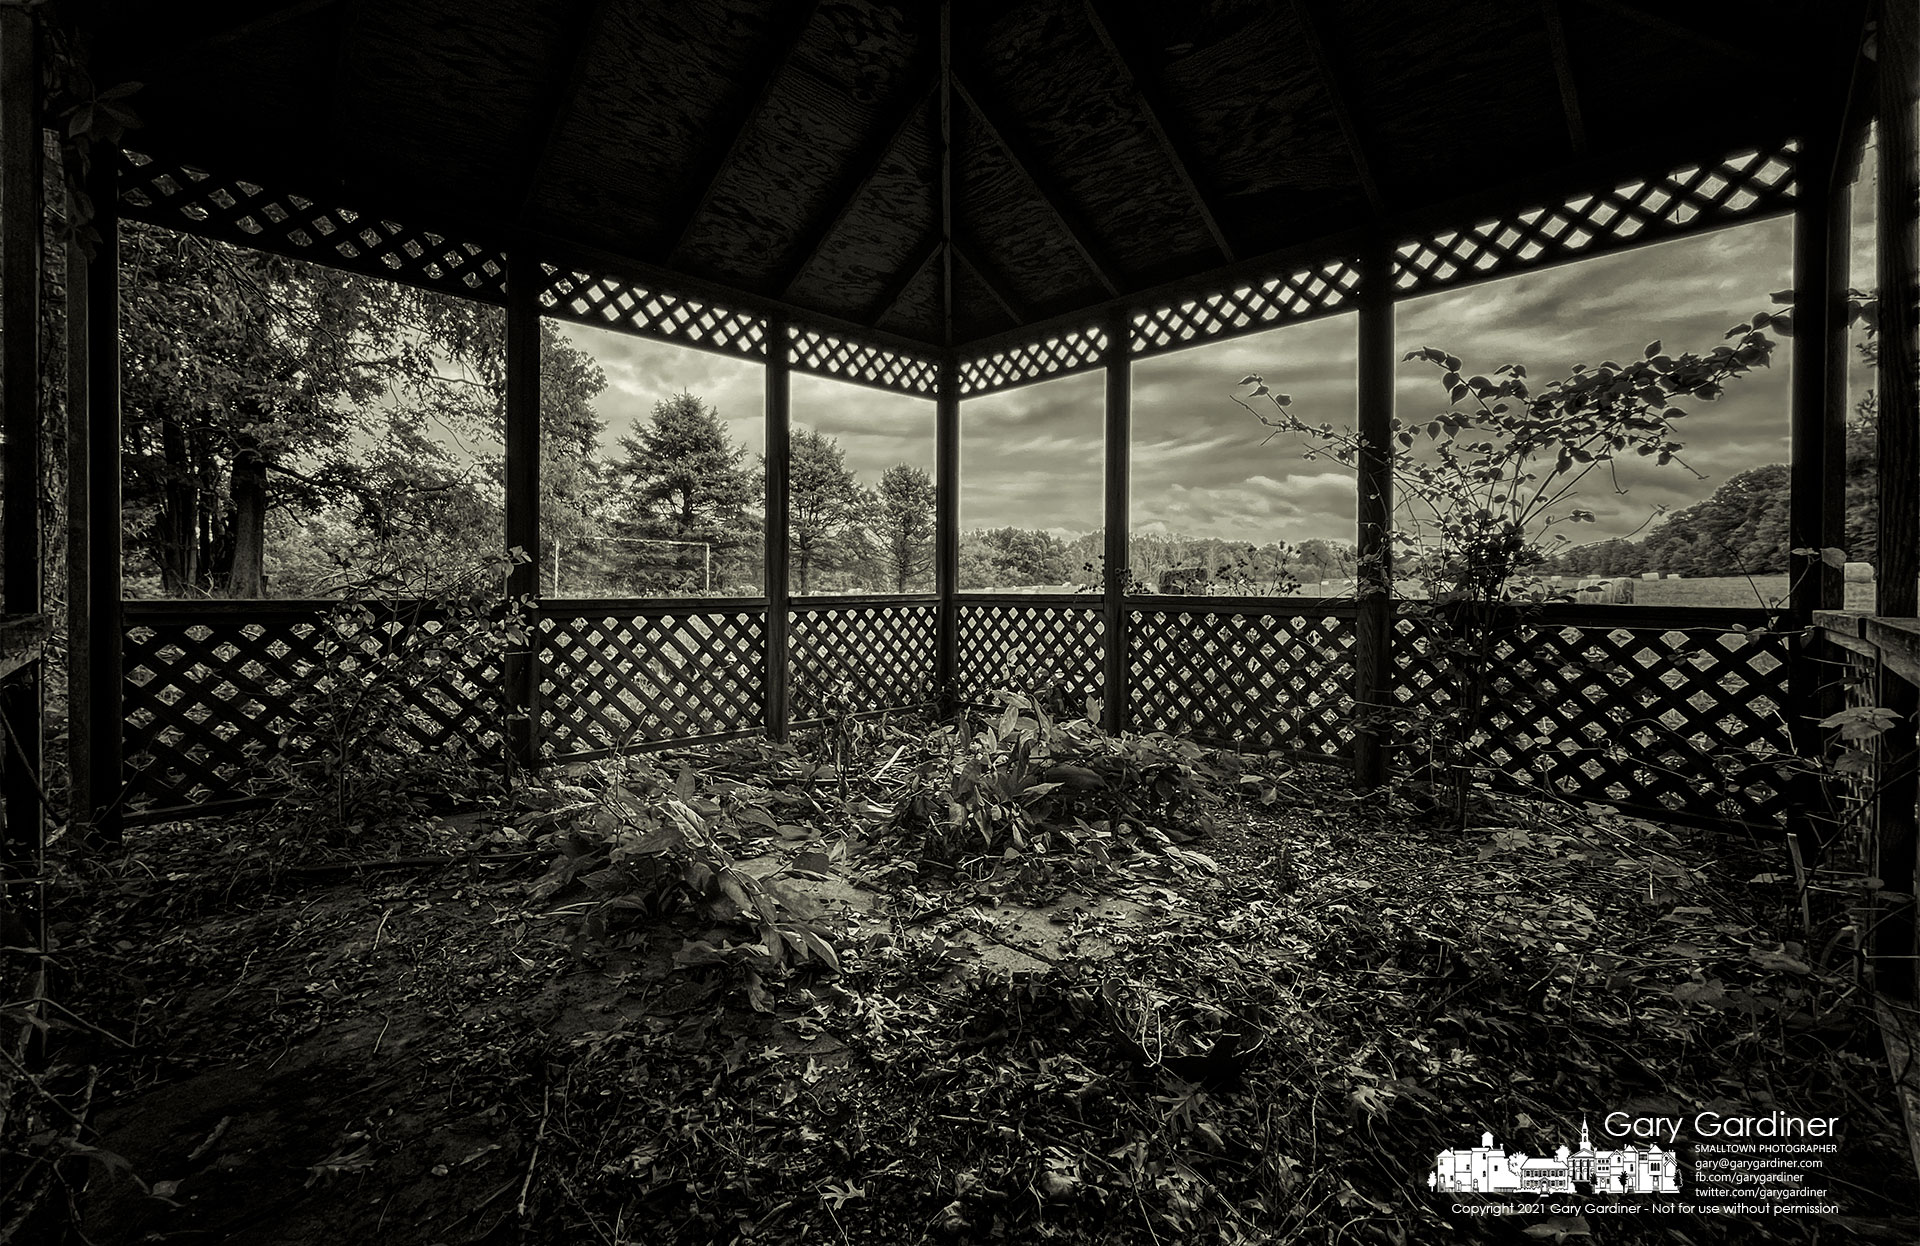 Weeds, leaves, and farm debris litter the floor of the abandoned gazebo on the Sharp Farm property as developers plan for homes, apartments, and businesses on the land around the historic house that once was a station on the Underground Railroad. My Final Photo for Oct. 7, 2021.